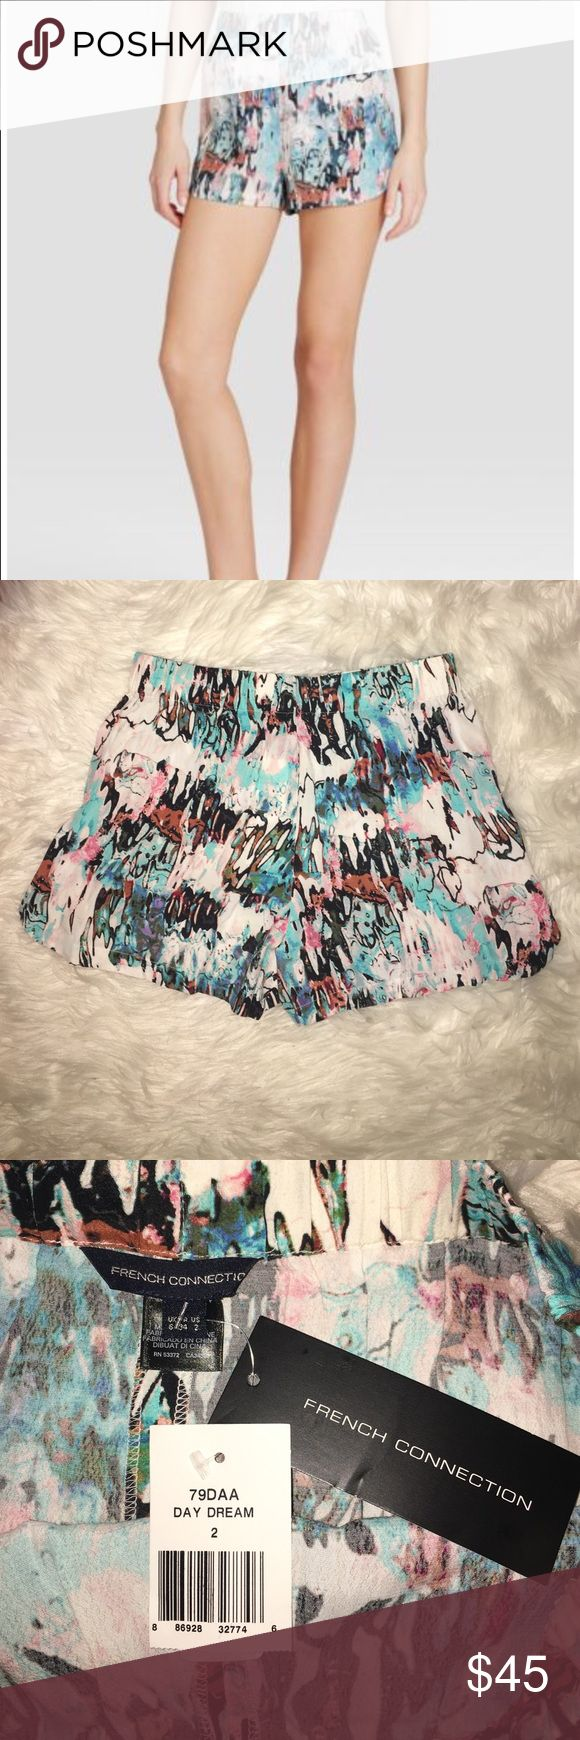 NWT French Connection Day Dream Shorts Size 2 New with tags French Connection Isla Ripple shorts in Day Dream multicolored print. Size 2. Sold out online! Elastic waistband. So comfy and cute! French Connection Shorts